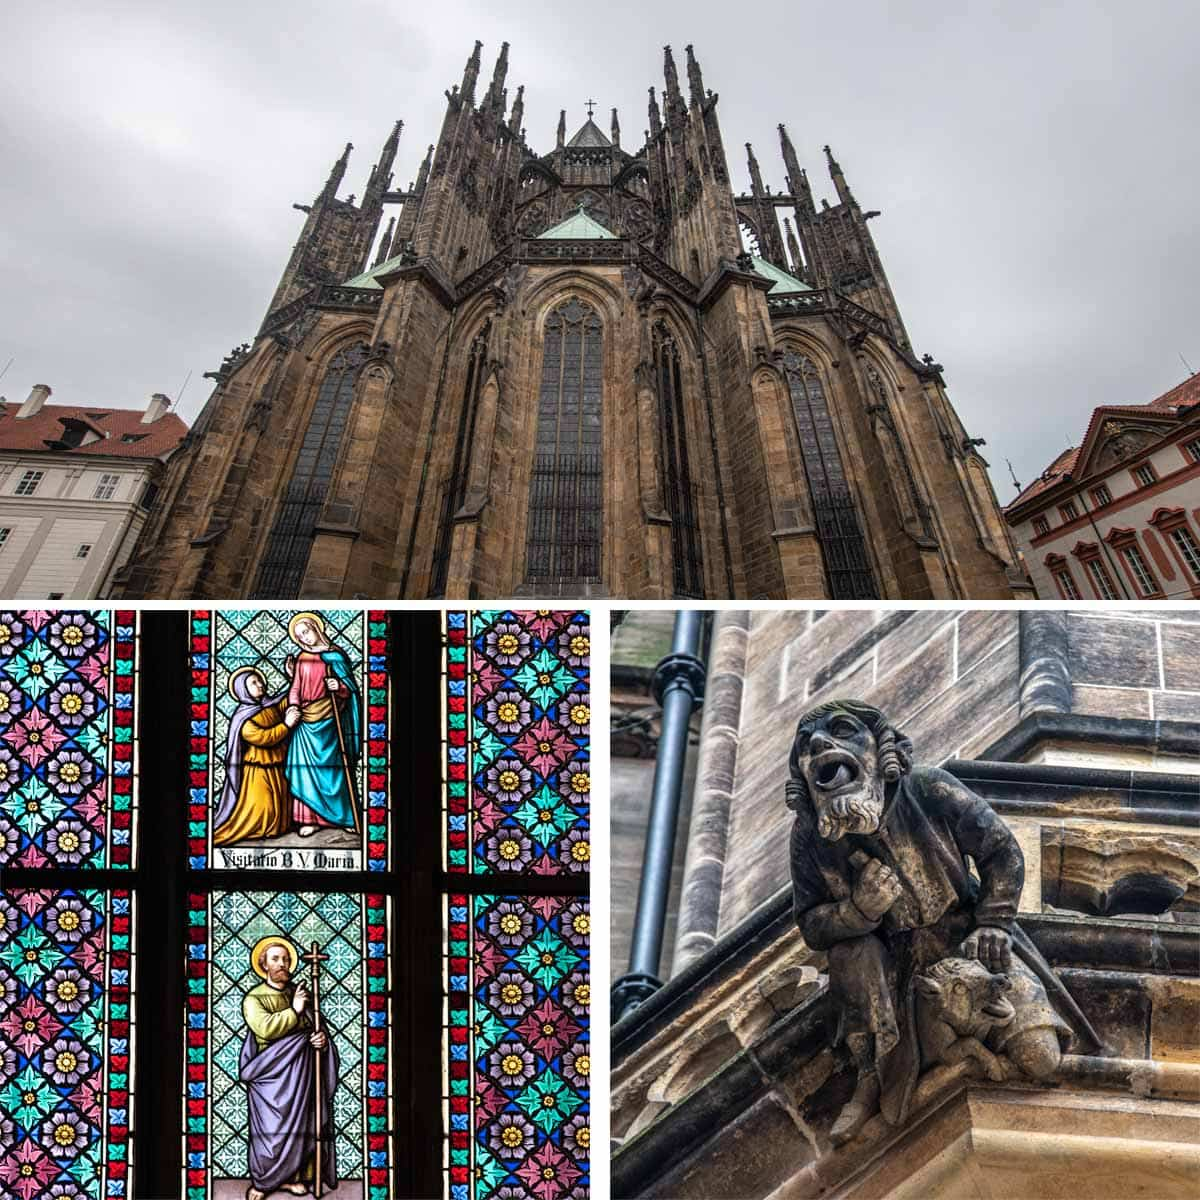 2 days in Prague - St.Vitus Cathedral